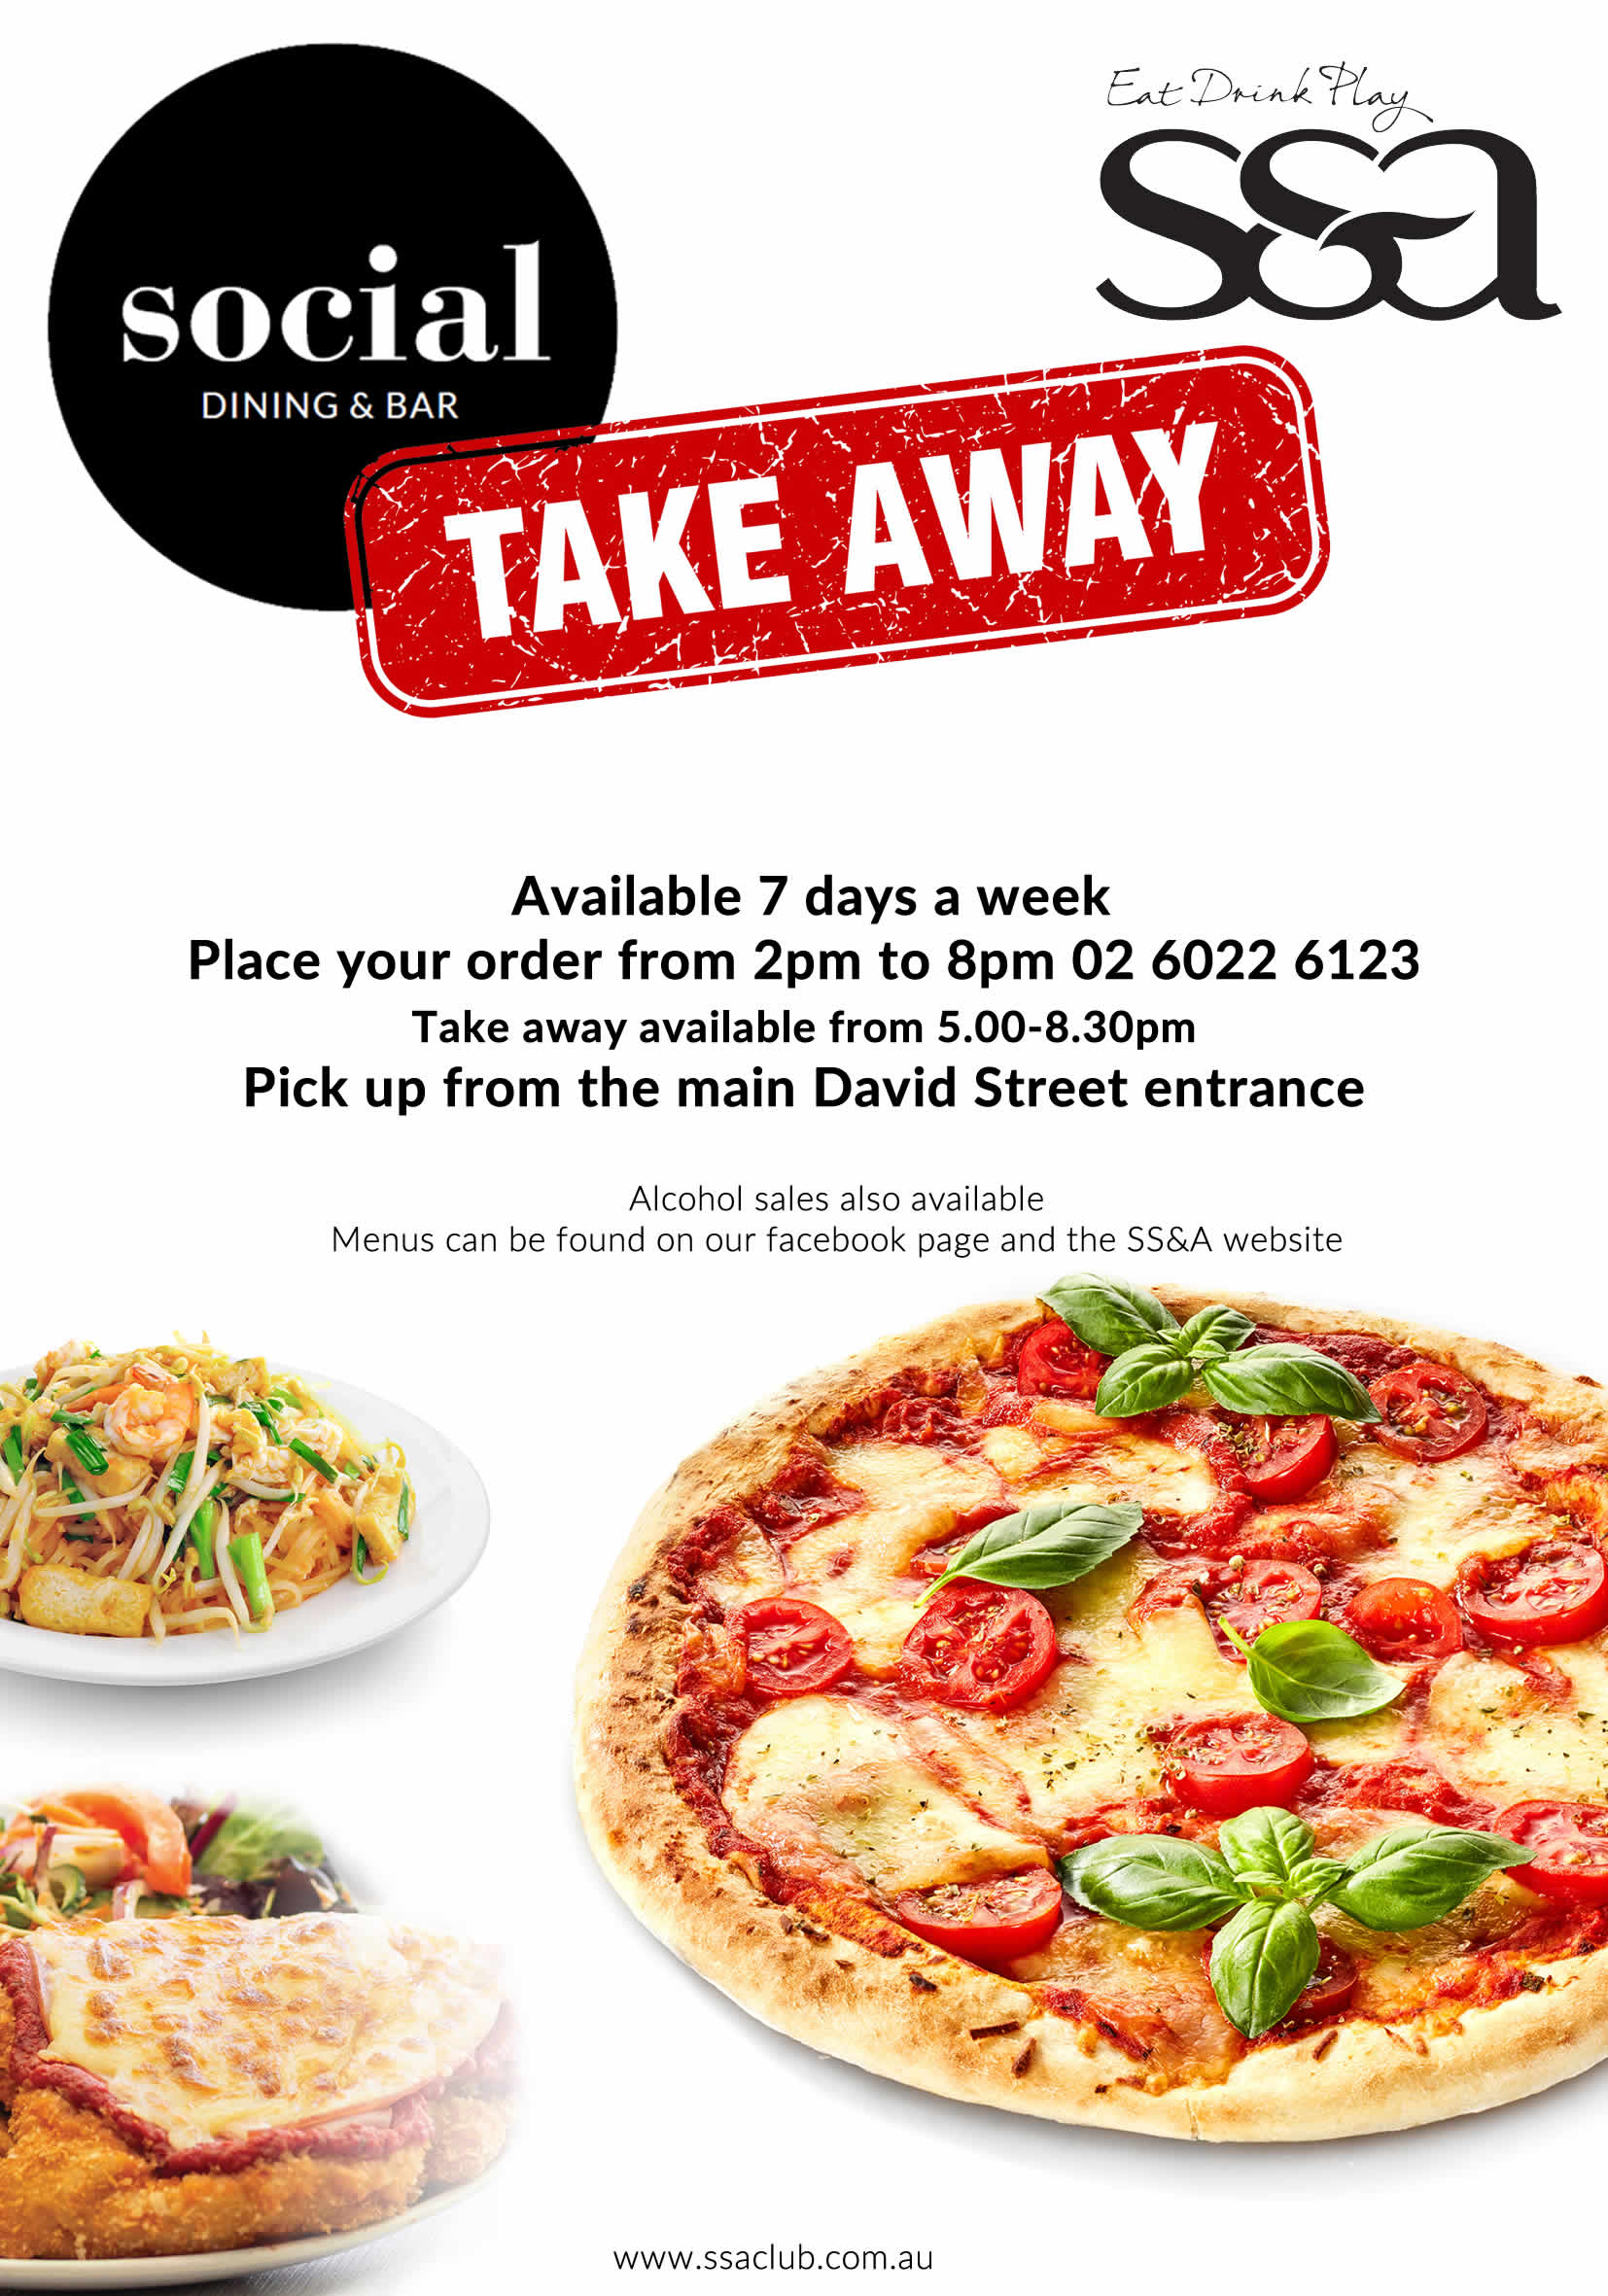 social-take-away-a3-poster-delivery